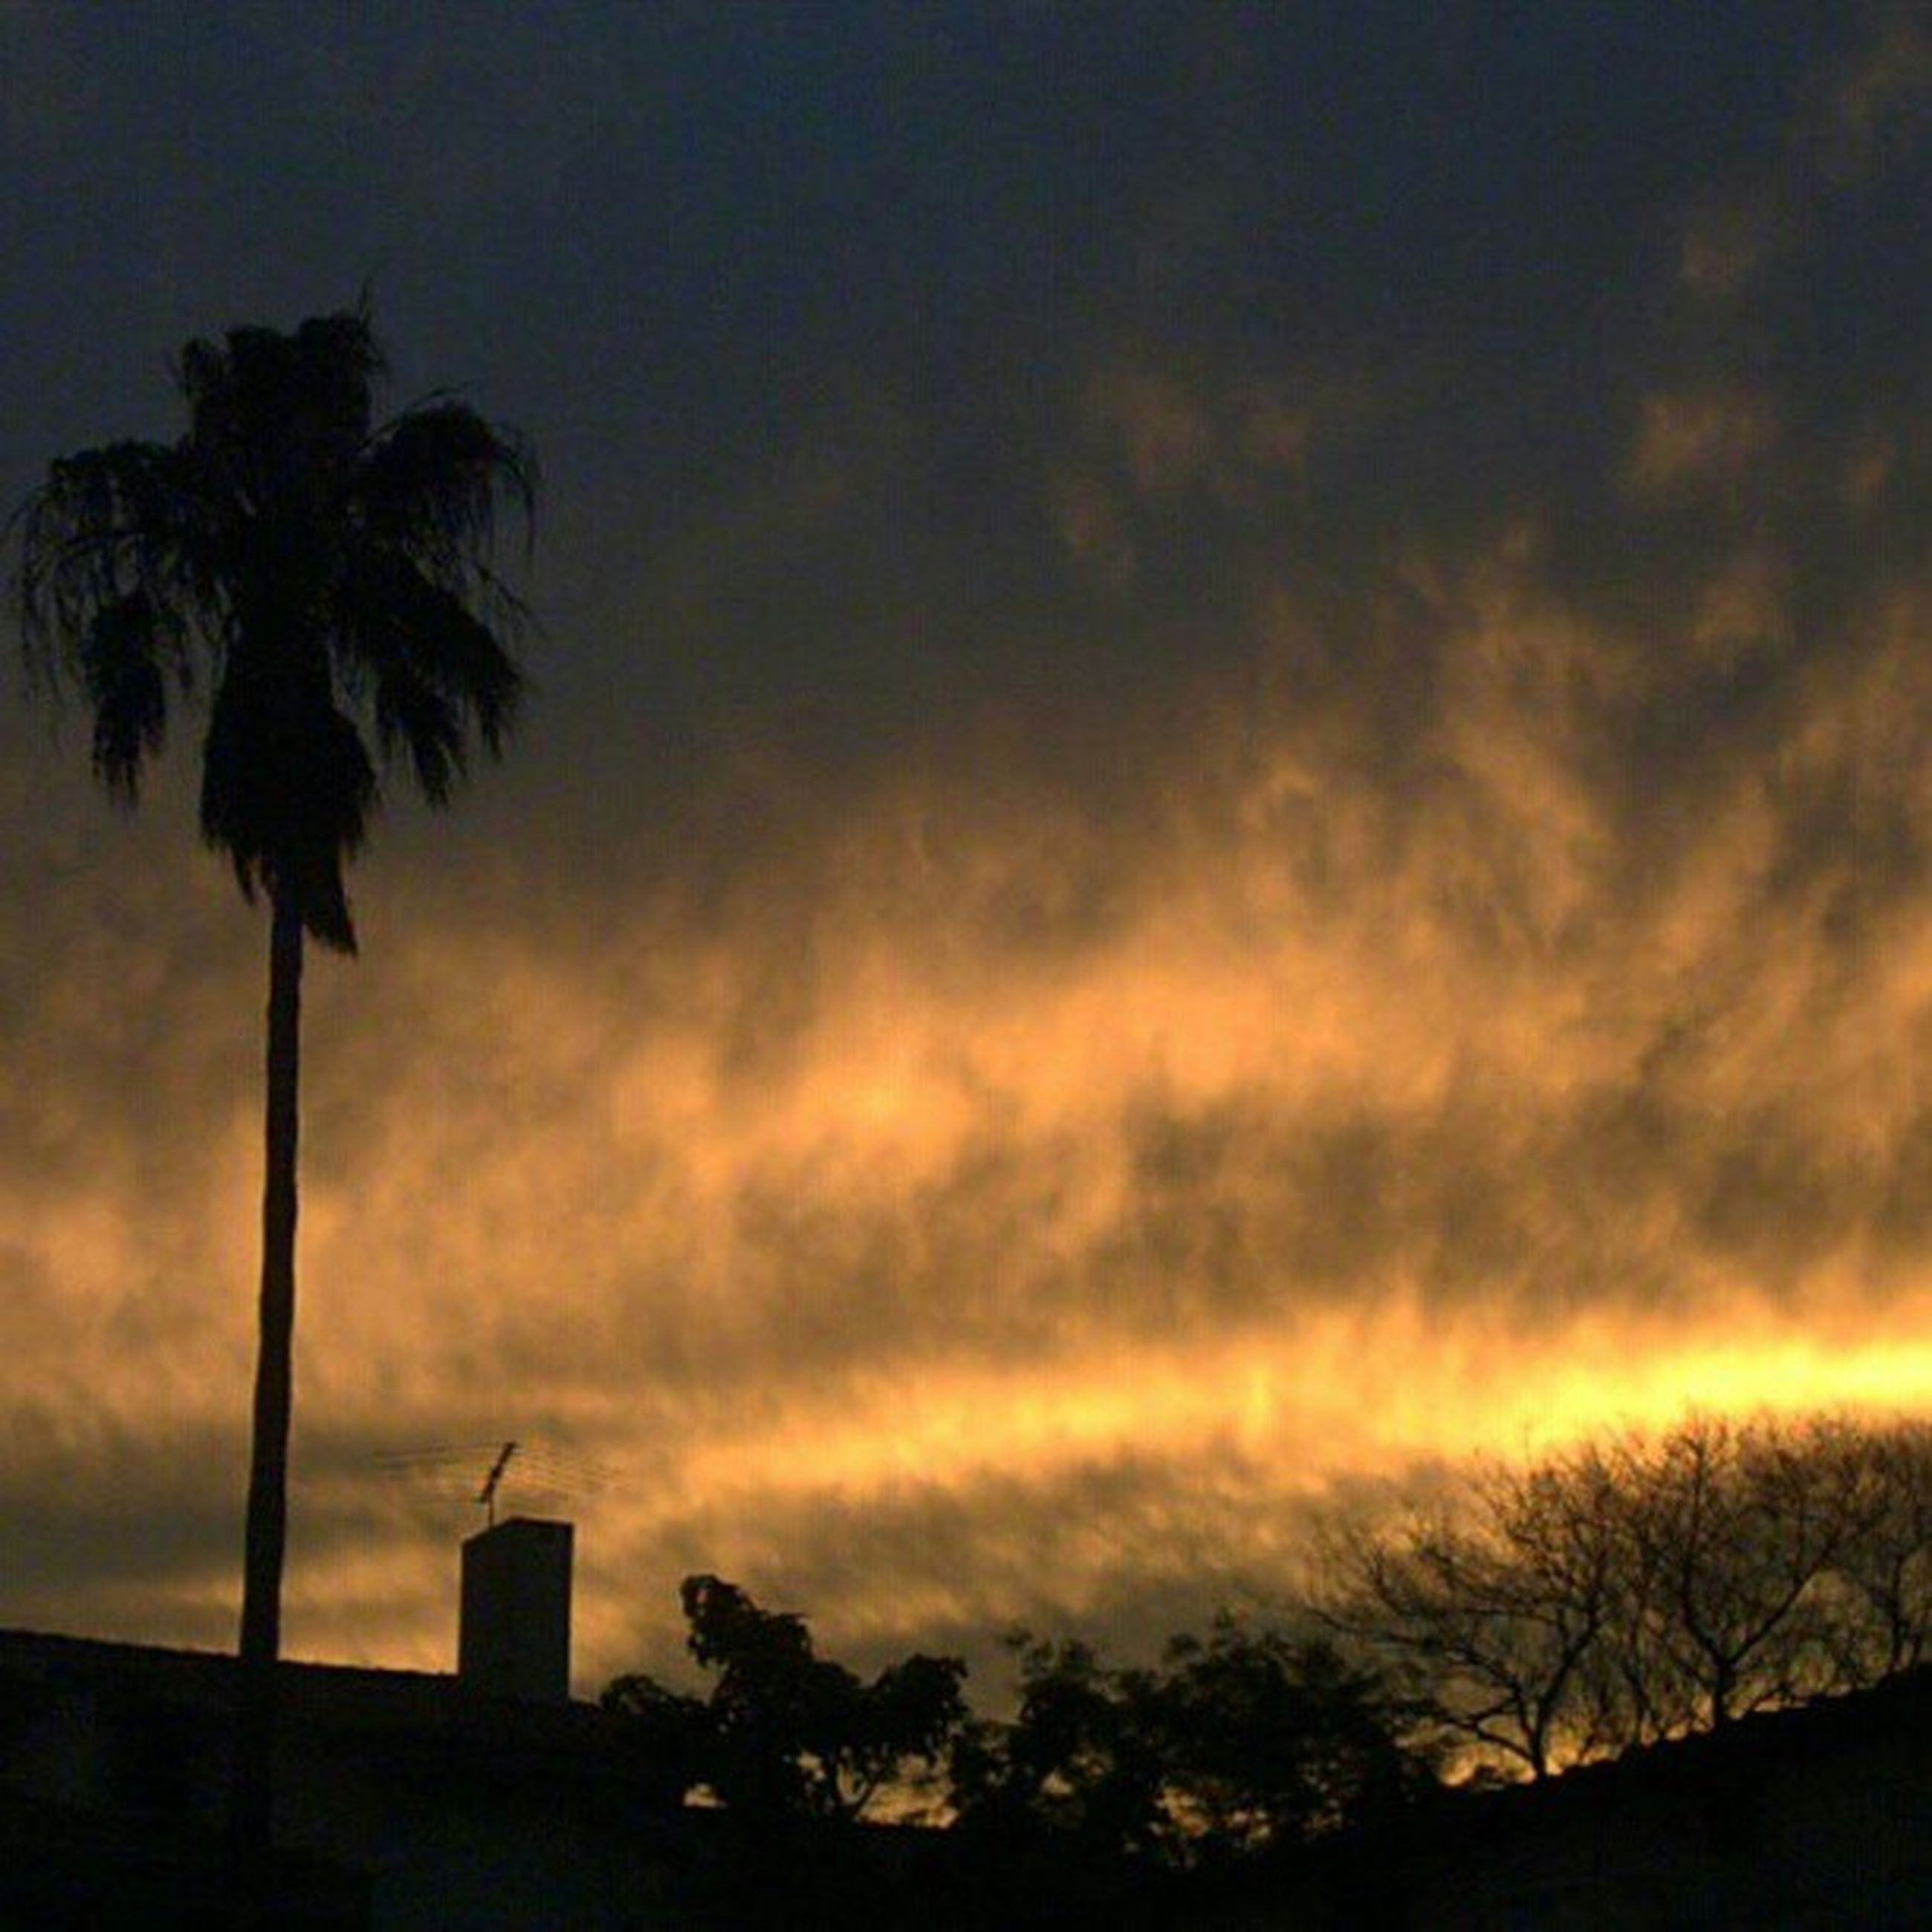 sunset, silhouette, sky, tree, palm tree, low angle view, cloud - sky, beauty in nature, orange color, scenics, nature, dramatic sky, tranquility, street light, dusk, cloudy, tranquil scene, cloud, built structure, building exterior